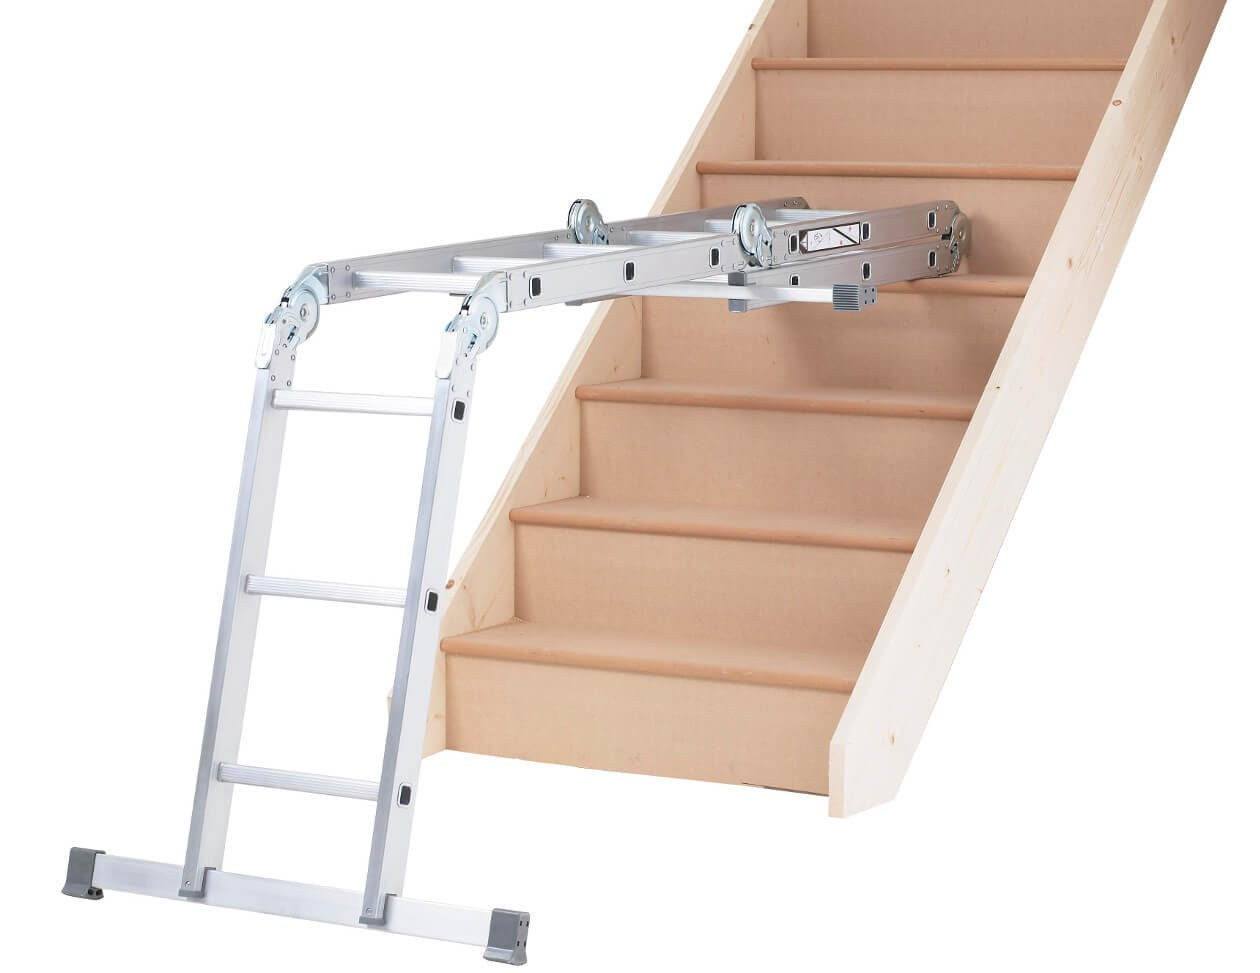 Ladder Used on Stairs